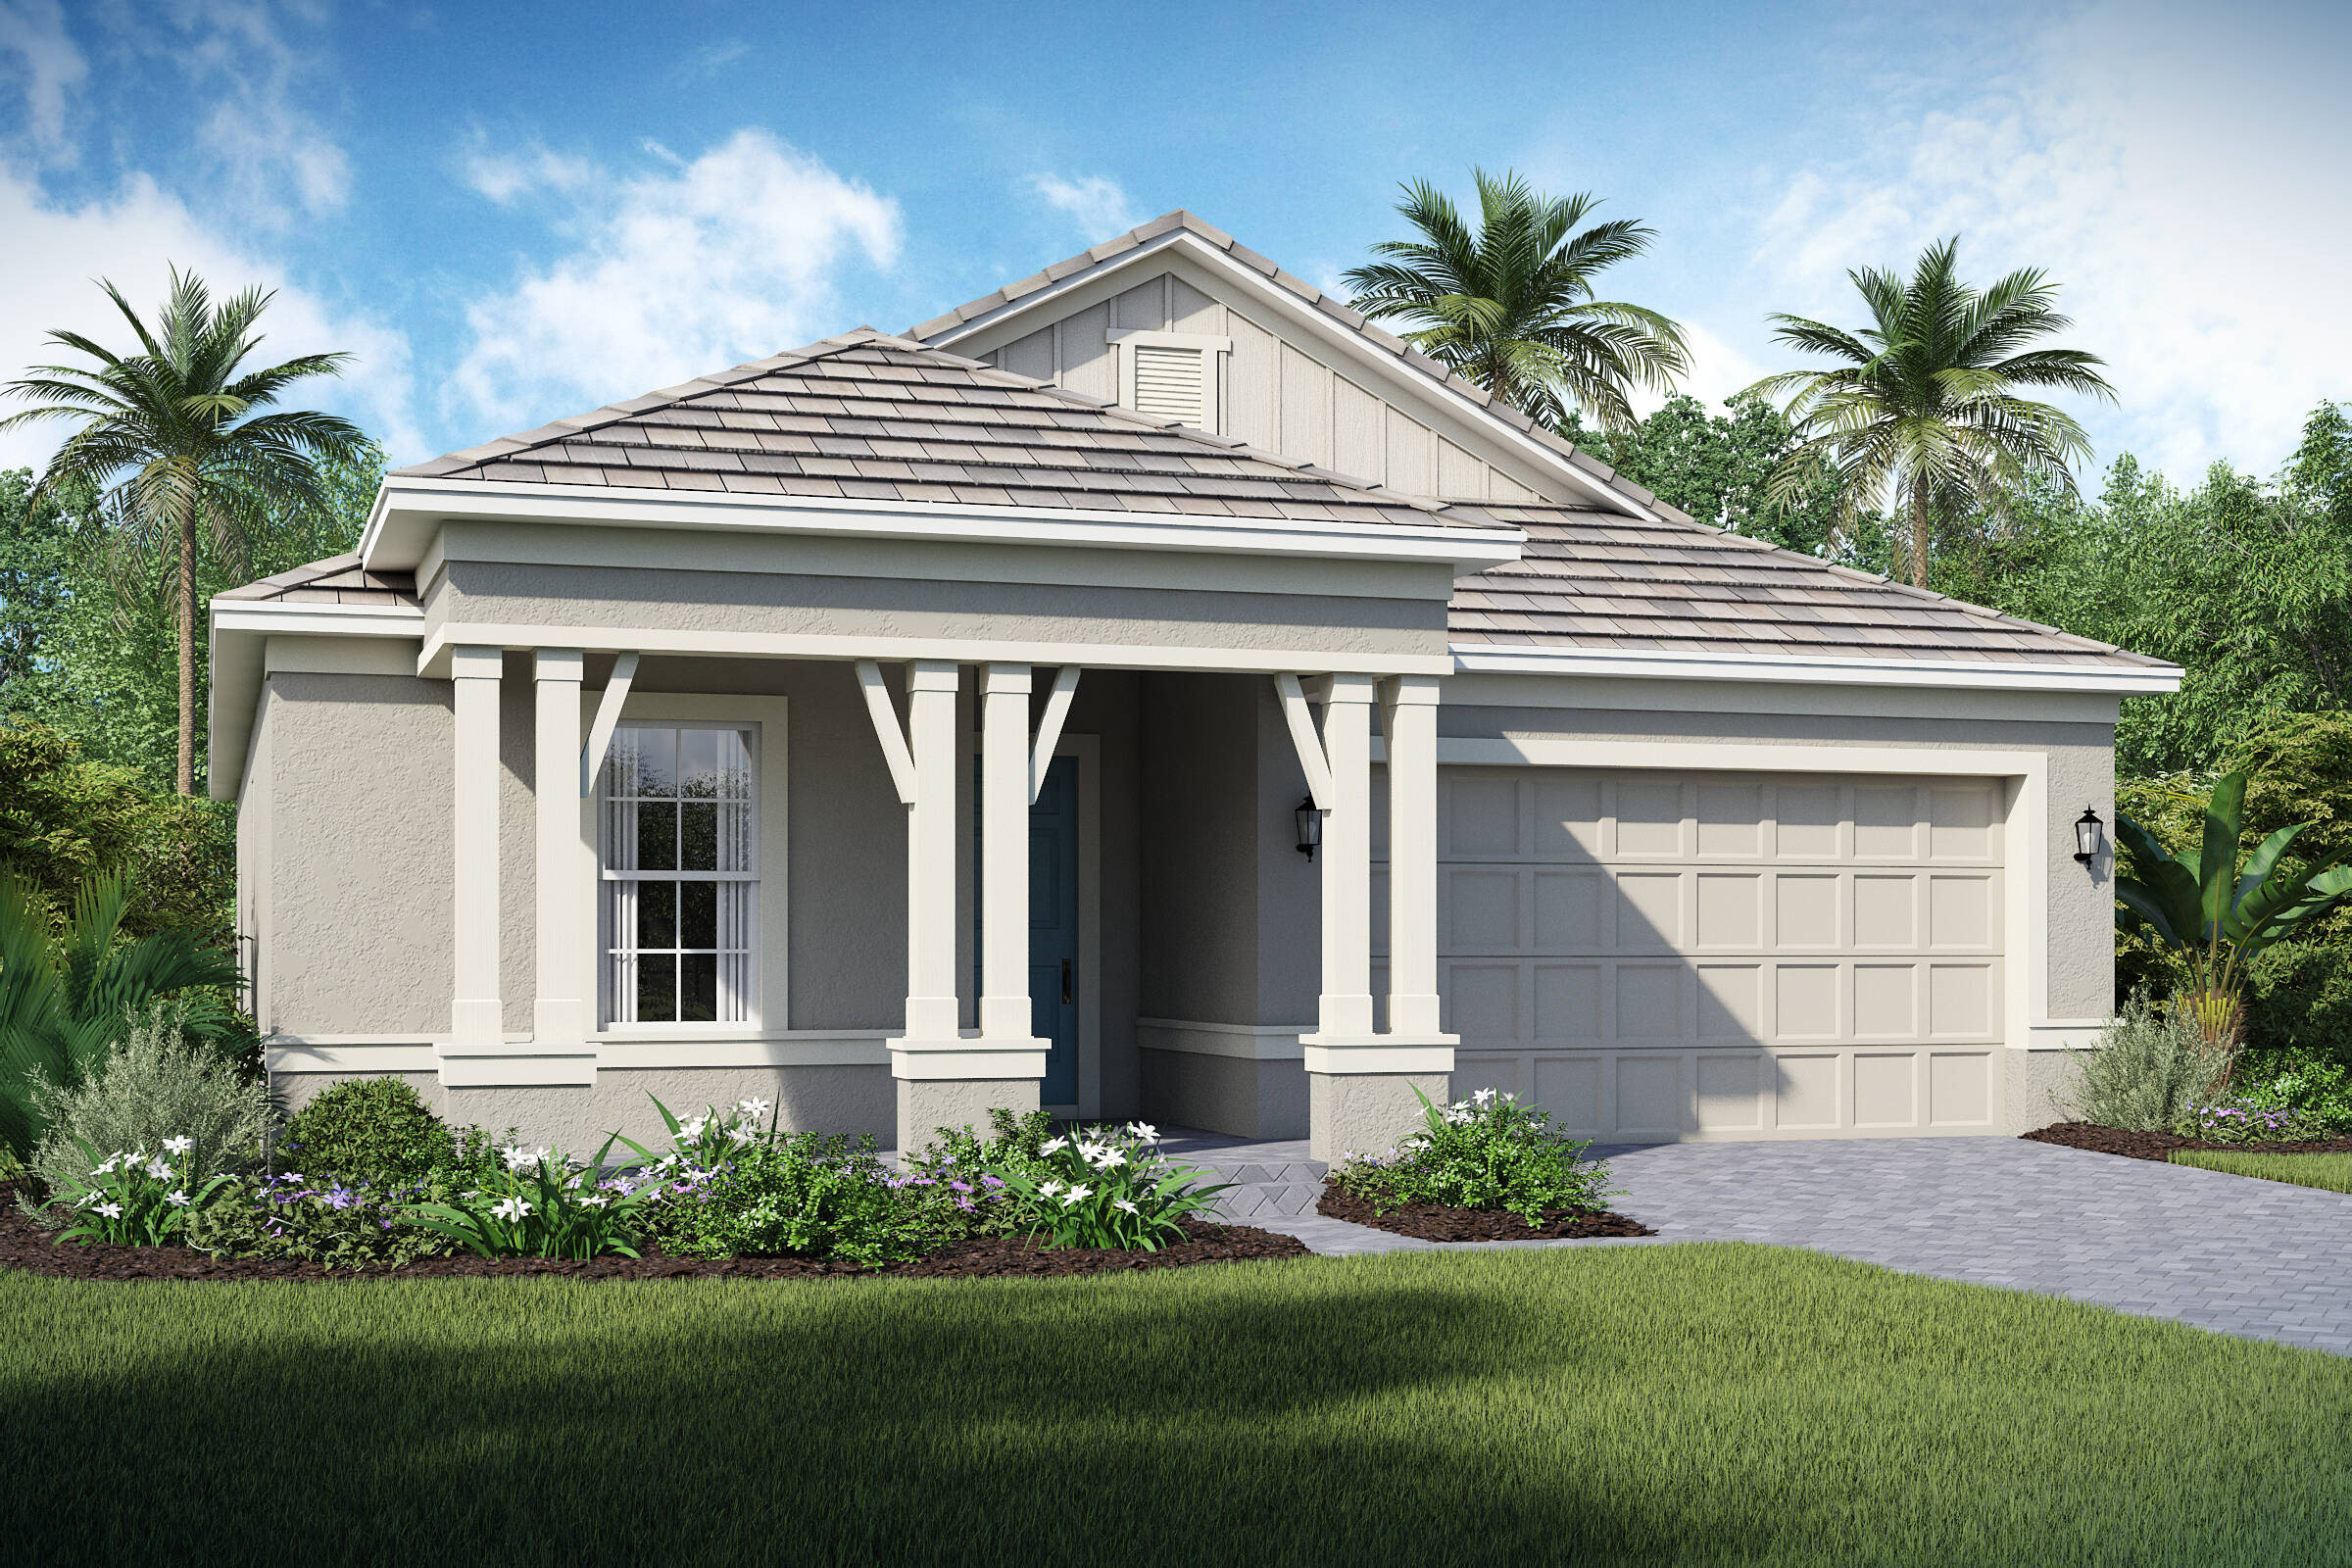 Saint Lucia C exterior lake florence preserve new homes in orlando florida